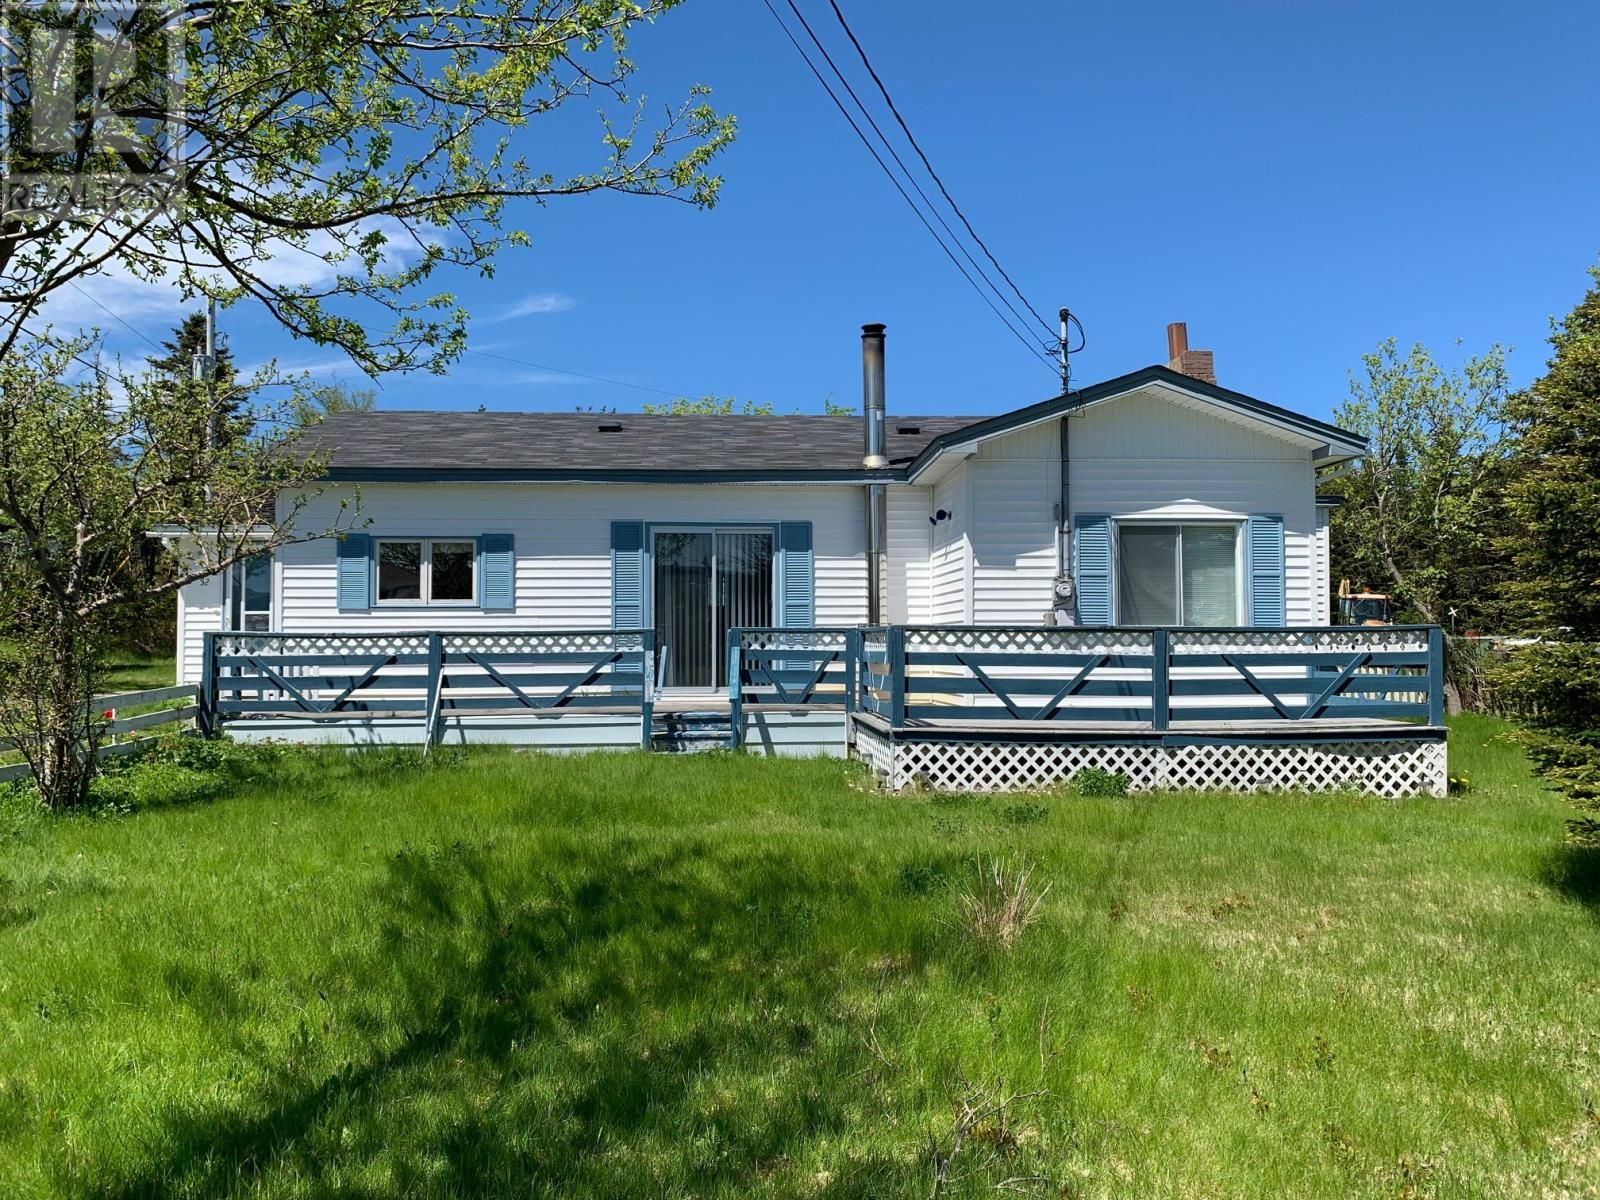 Main Photo: 52 Pitchers Path in St. John's: House for sale : MLS®# 1233464